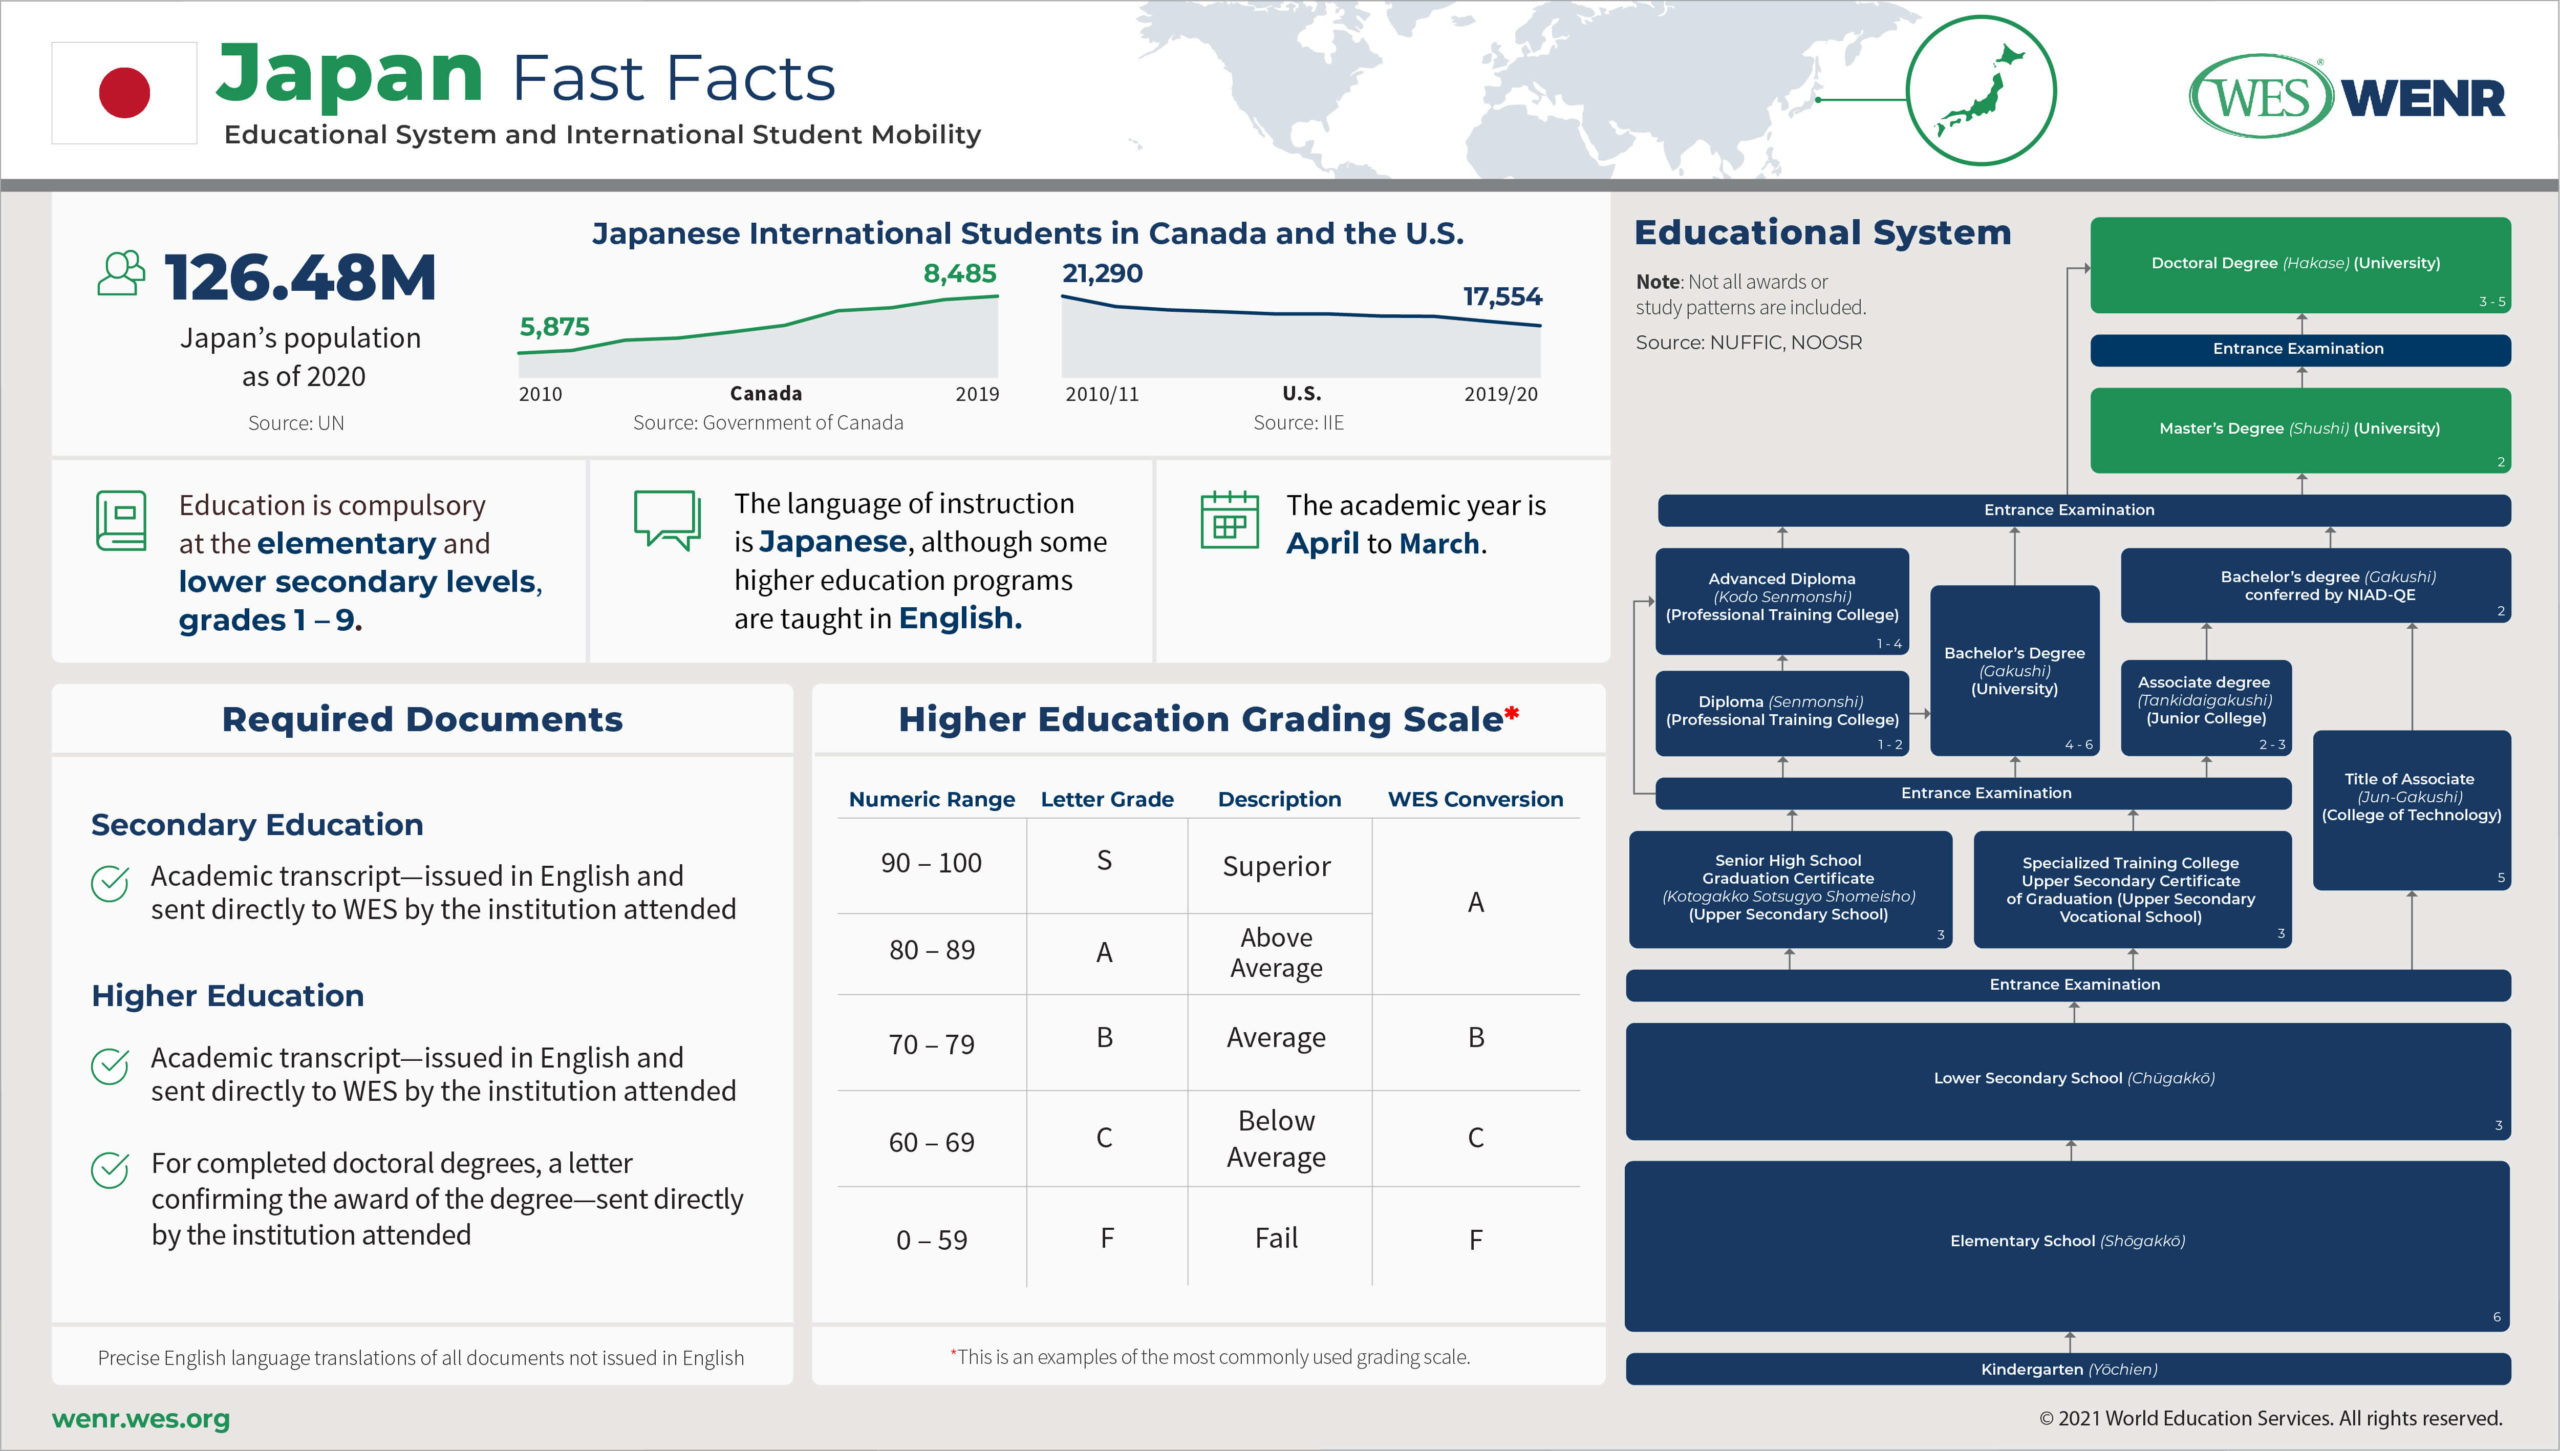 Education in Japan Infographic: Fast facts on Japan's educational system and international student mobility